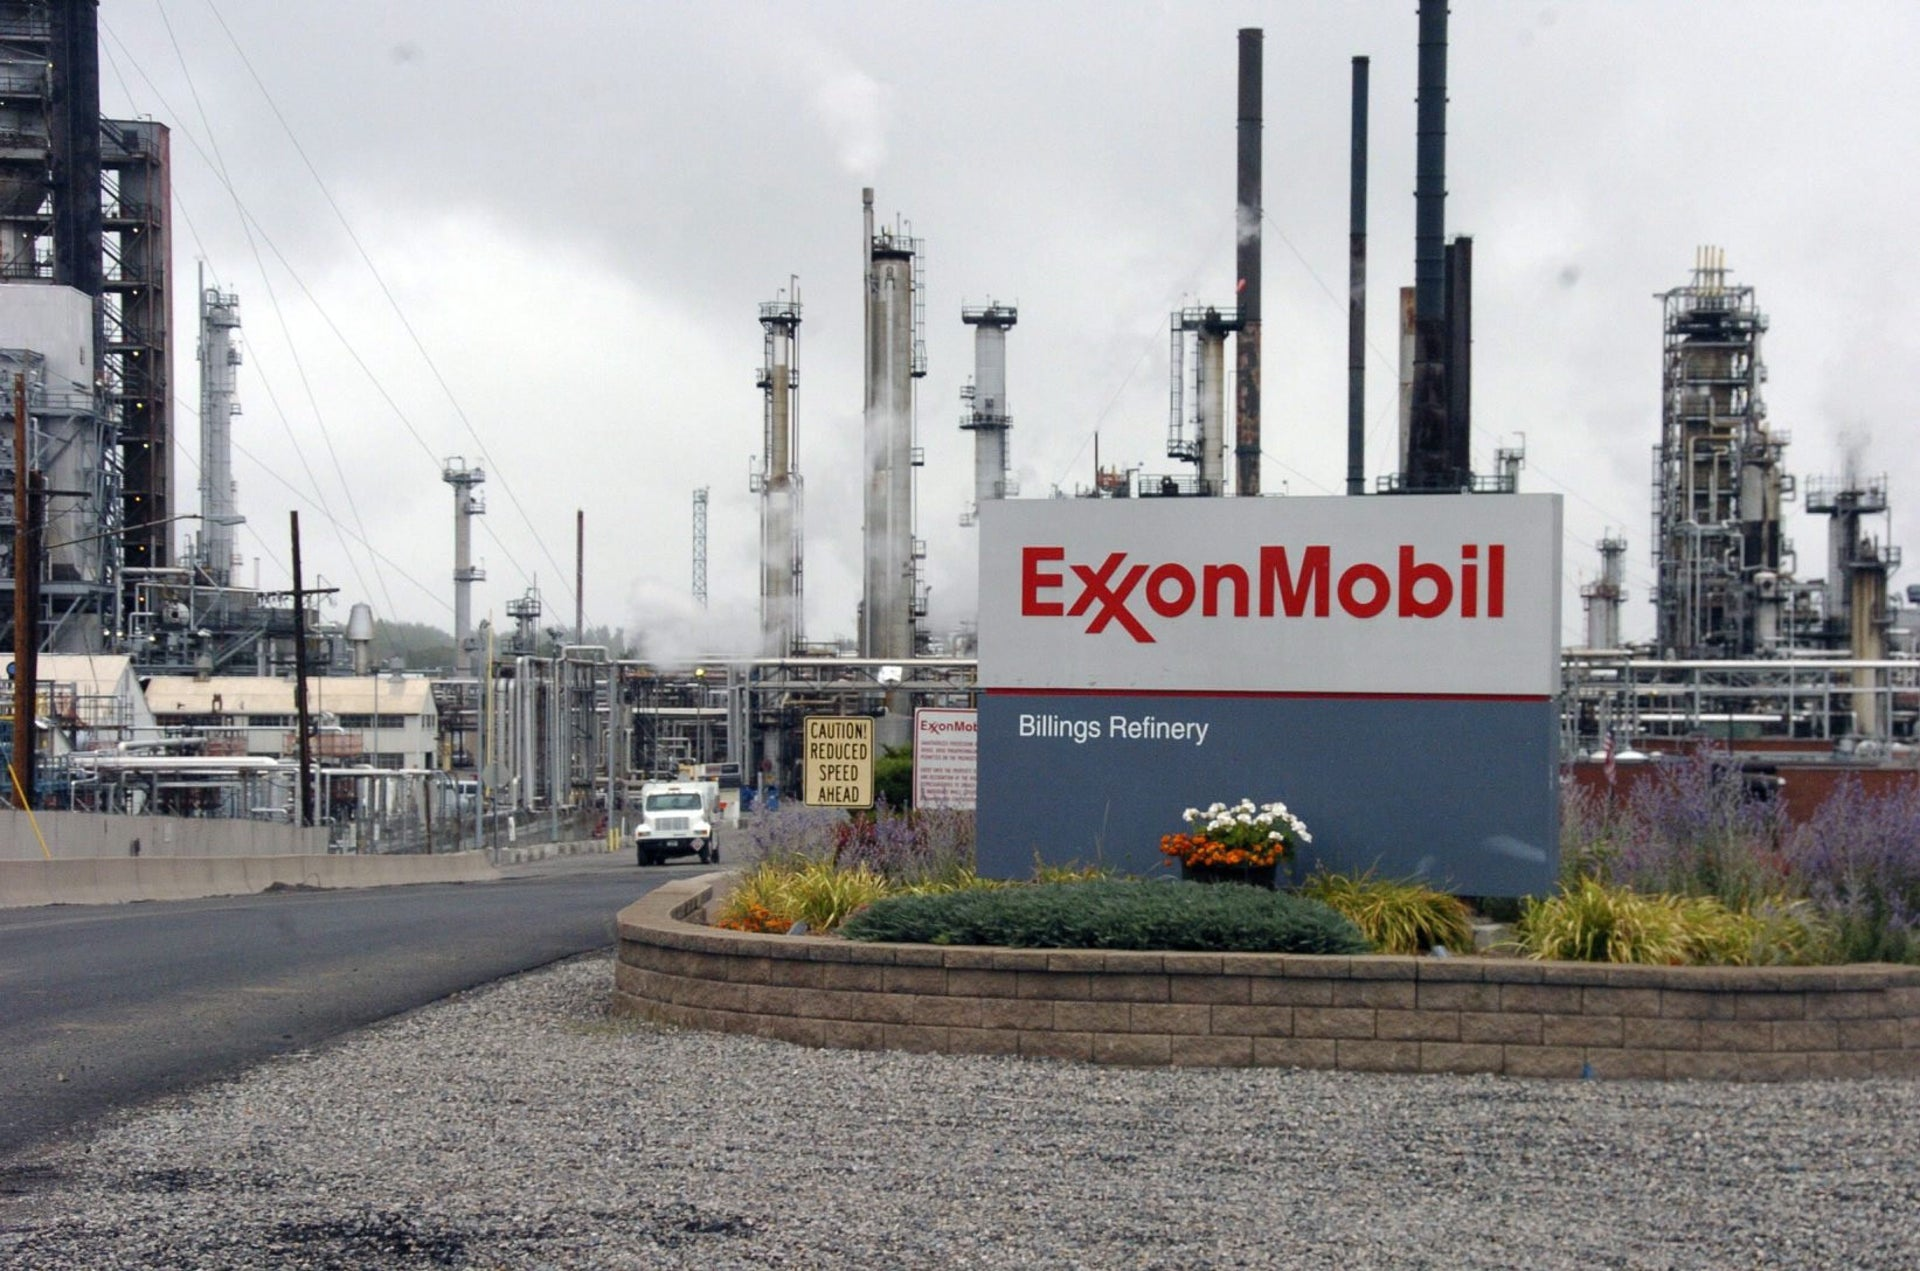 This Wednesday, Sept. 21, 2016, file photo shows Exxon Mobil's Billings Refinery in Billings, MT.